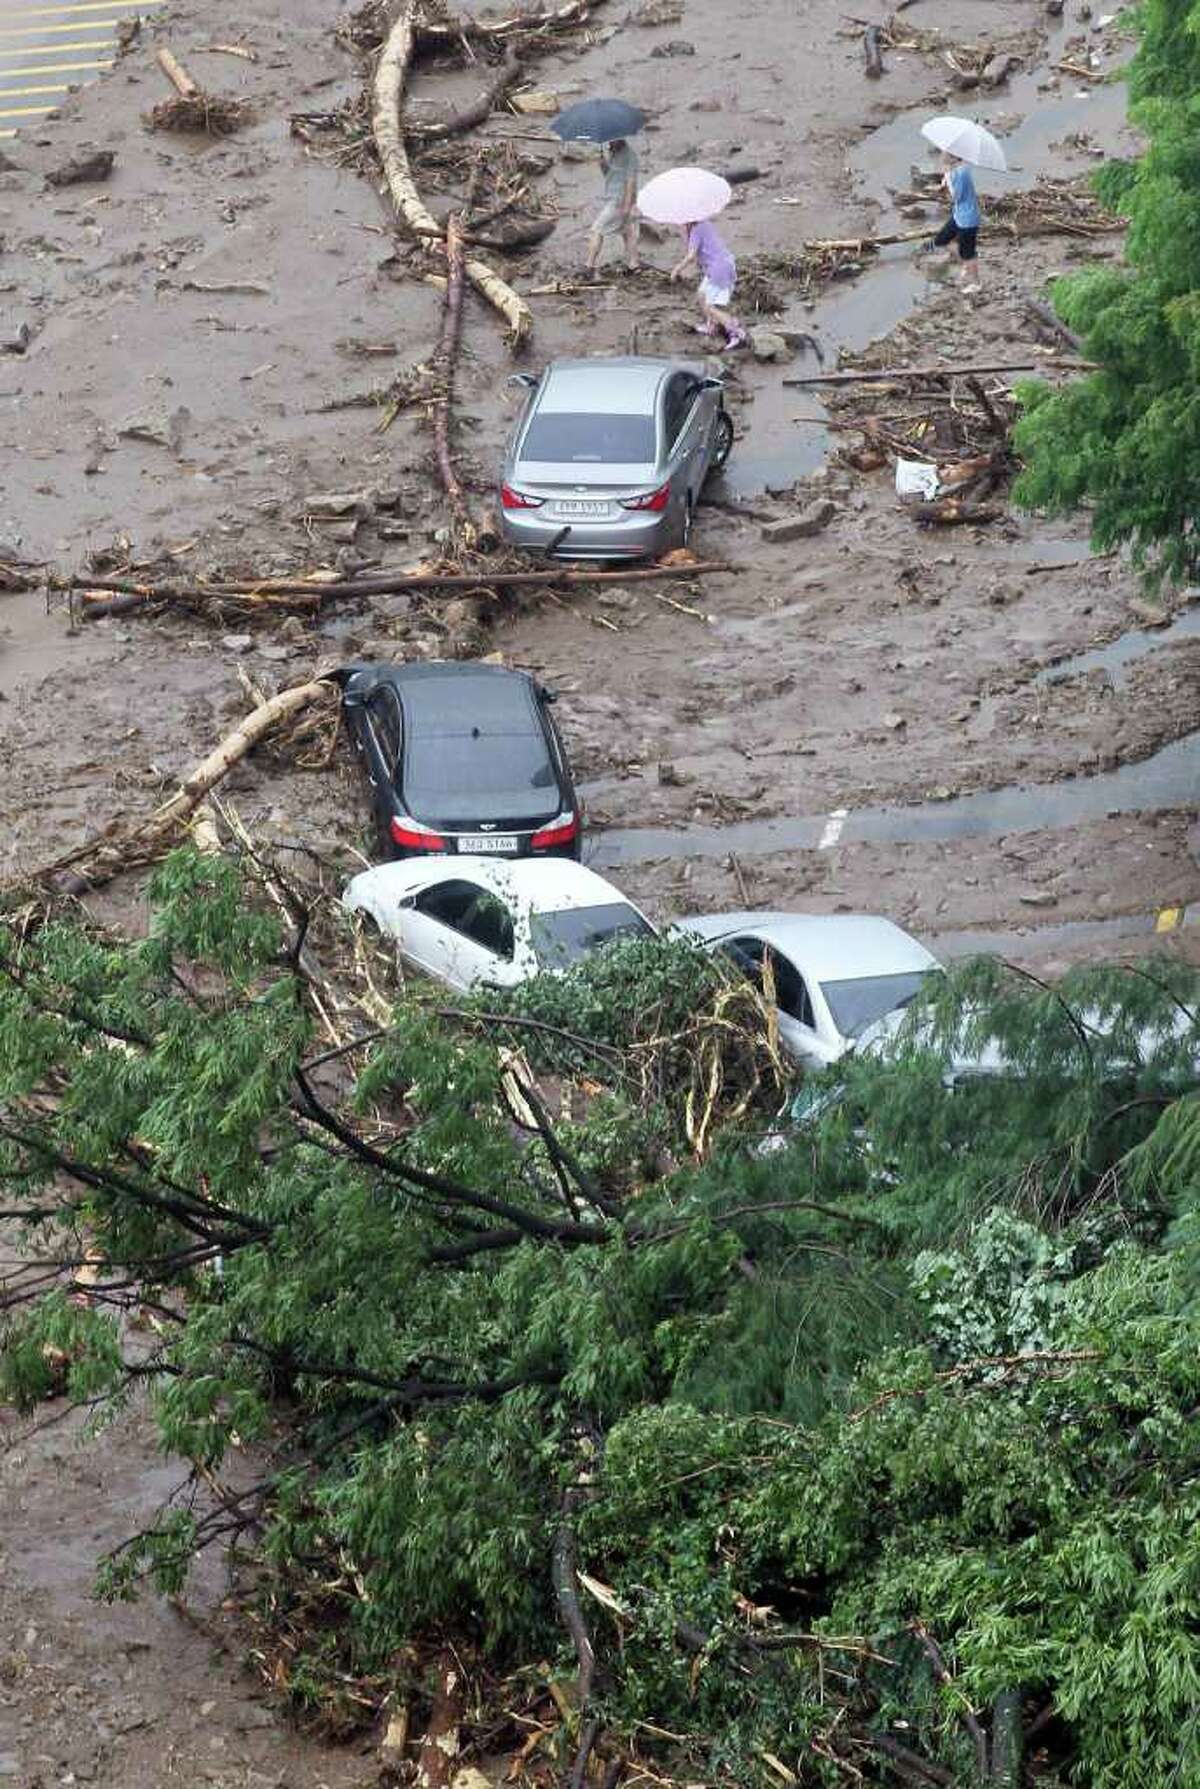 Residents pass by wrecked vehicles after a landslide caused by heavy rains in Seoul, South Korea, on Wednesday. A quick blast of heavy rain sent landslides barreling through South Korea's capital and a northern town Wednesday. (AP Photo/Yonhap, Kim Ju-sung)